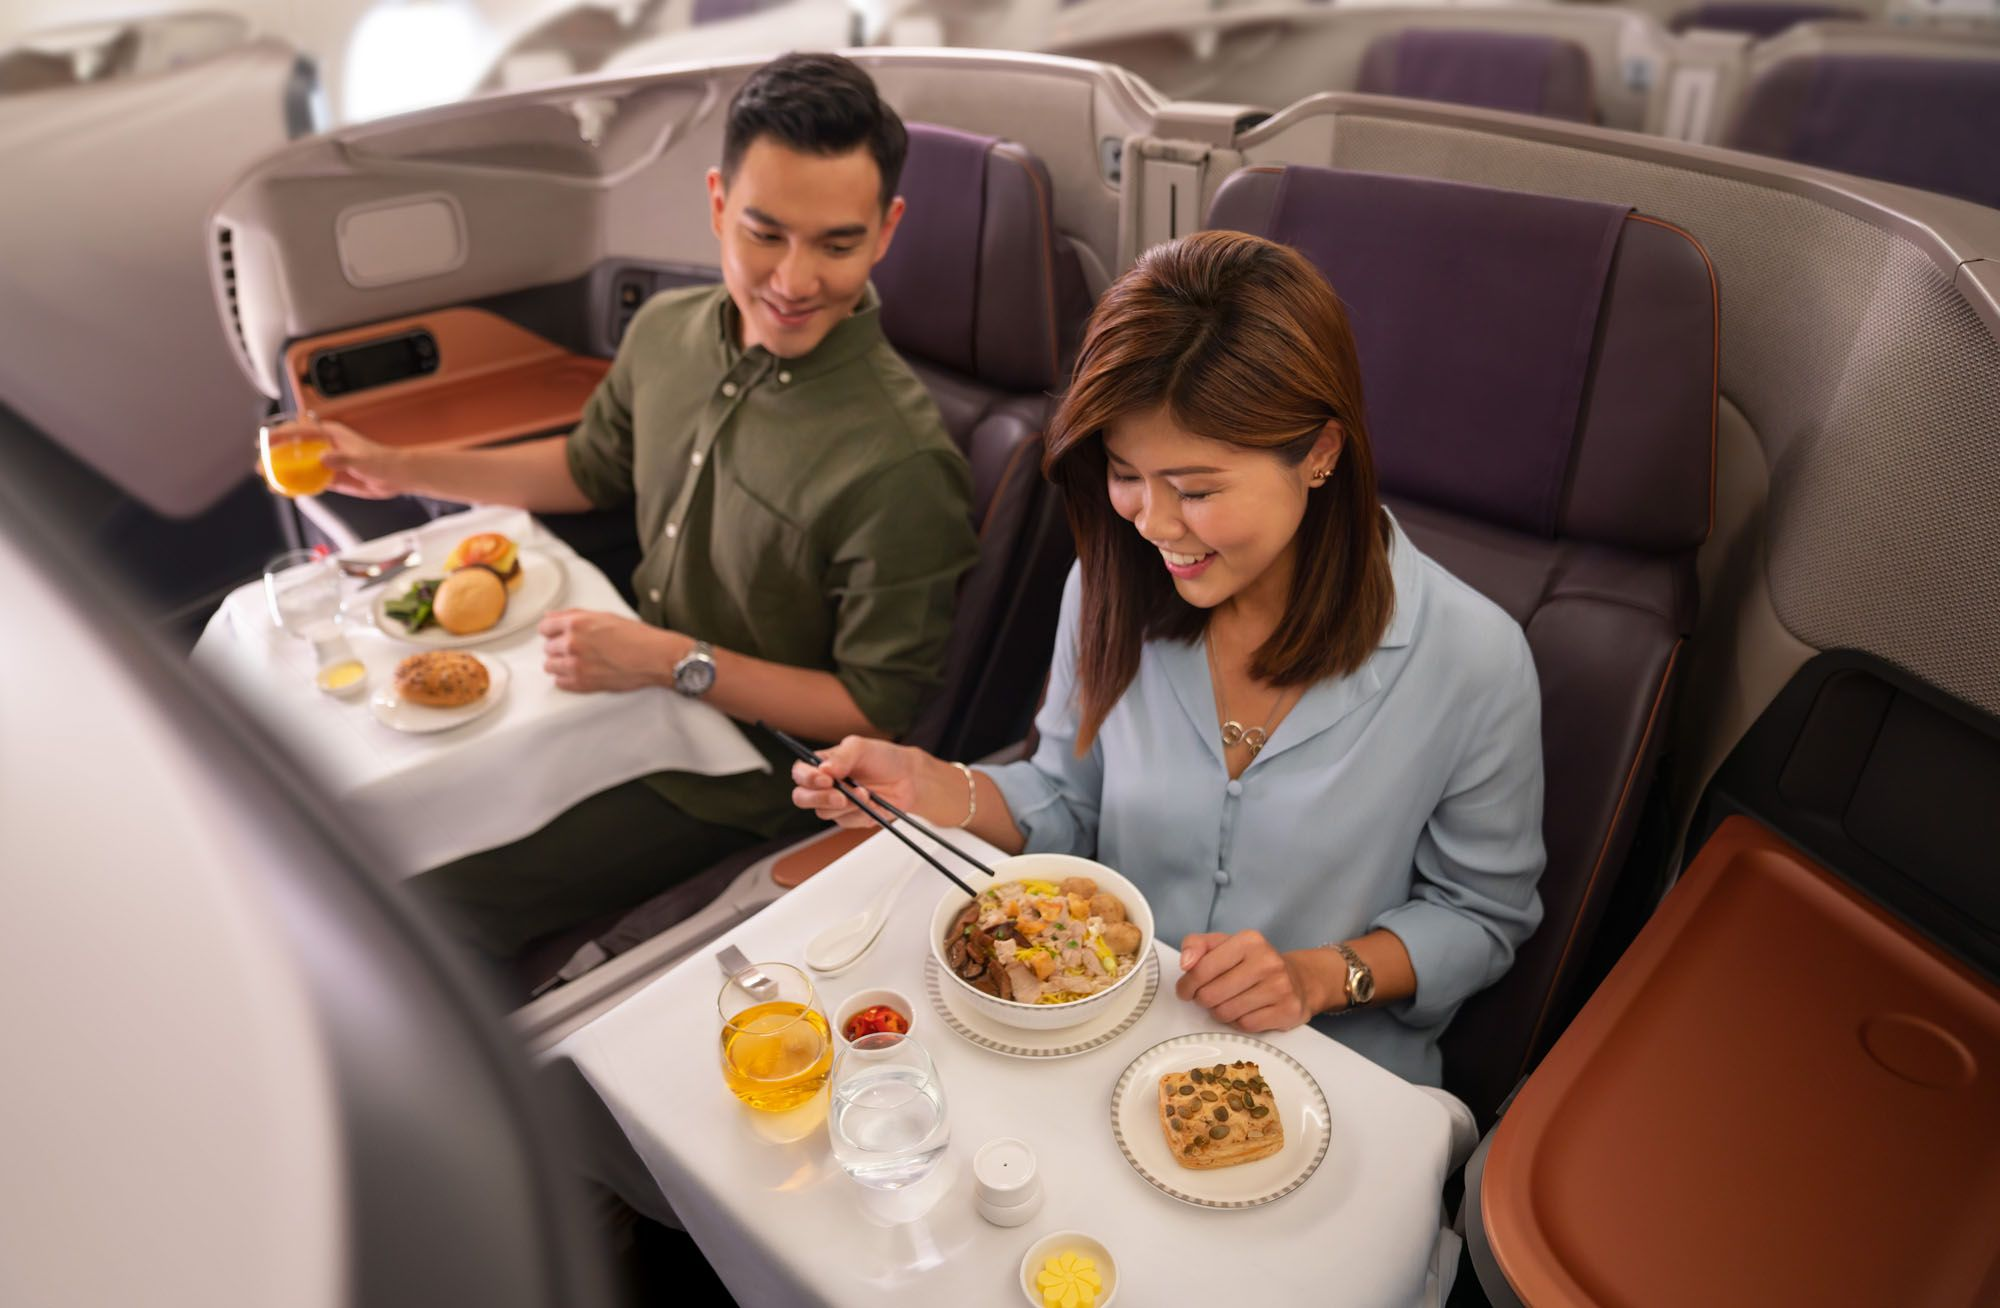 Singapore Airlines Restaurant A380 at Changi: A Dining Experience That Left Us on a High